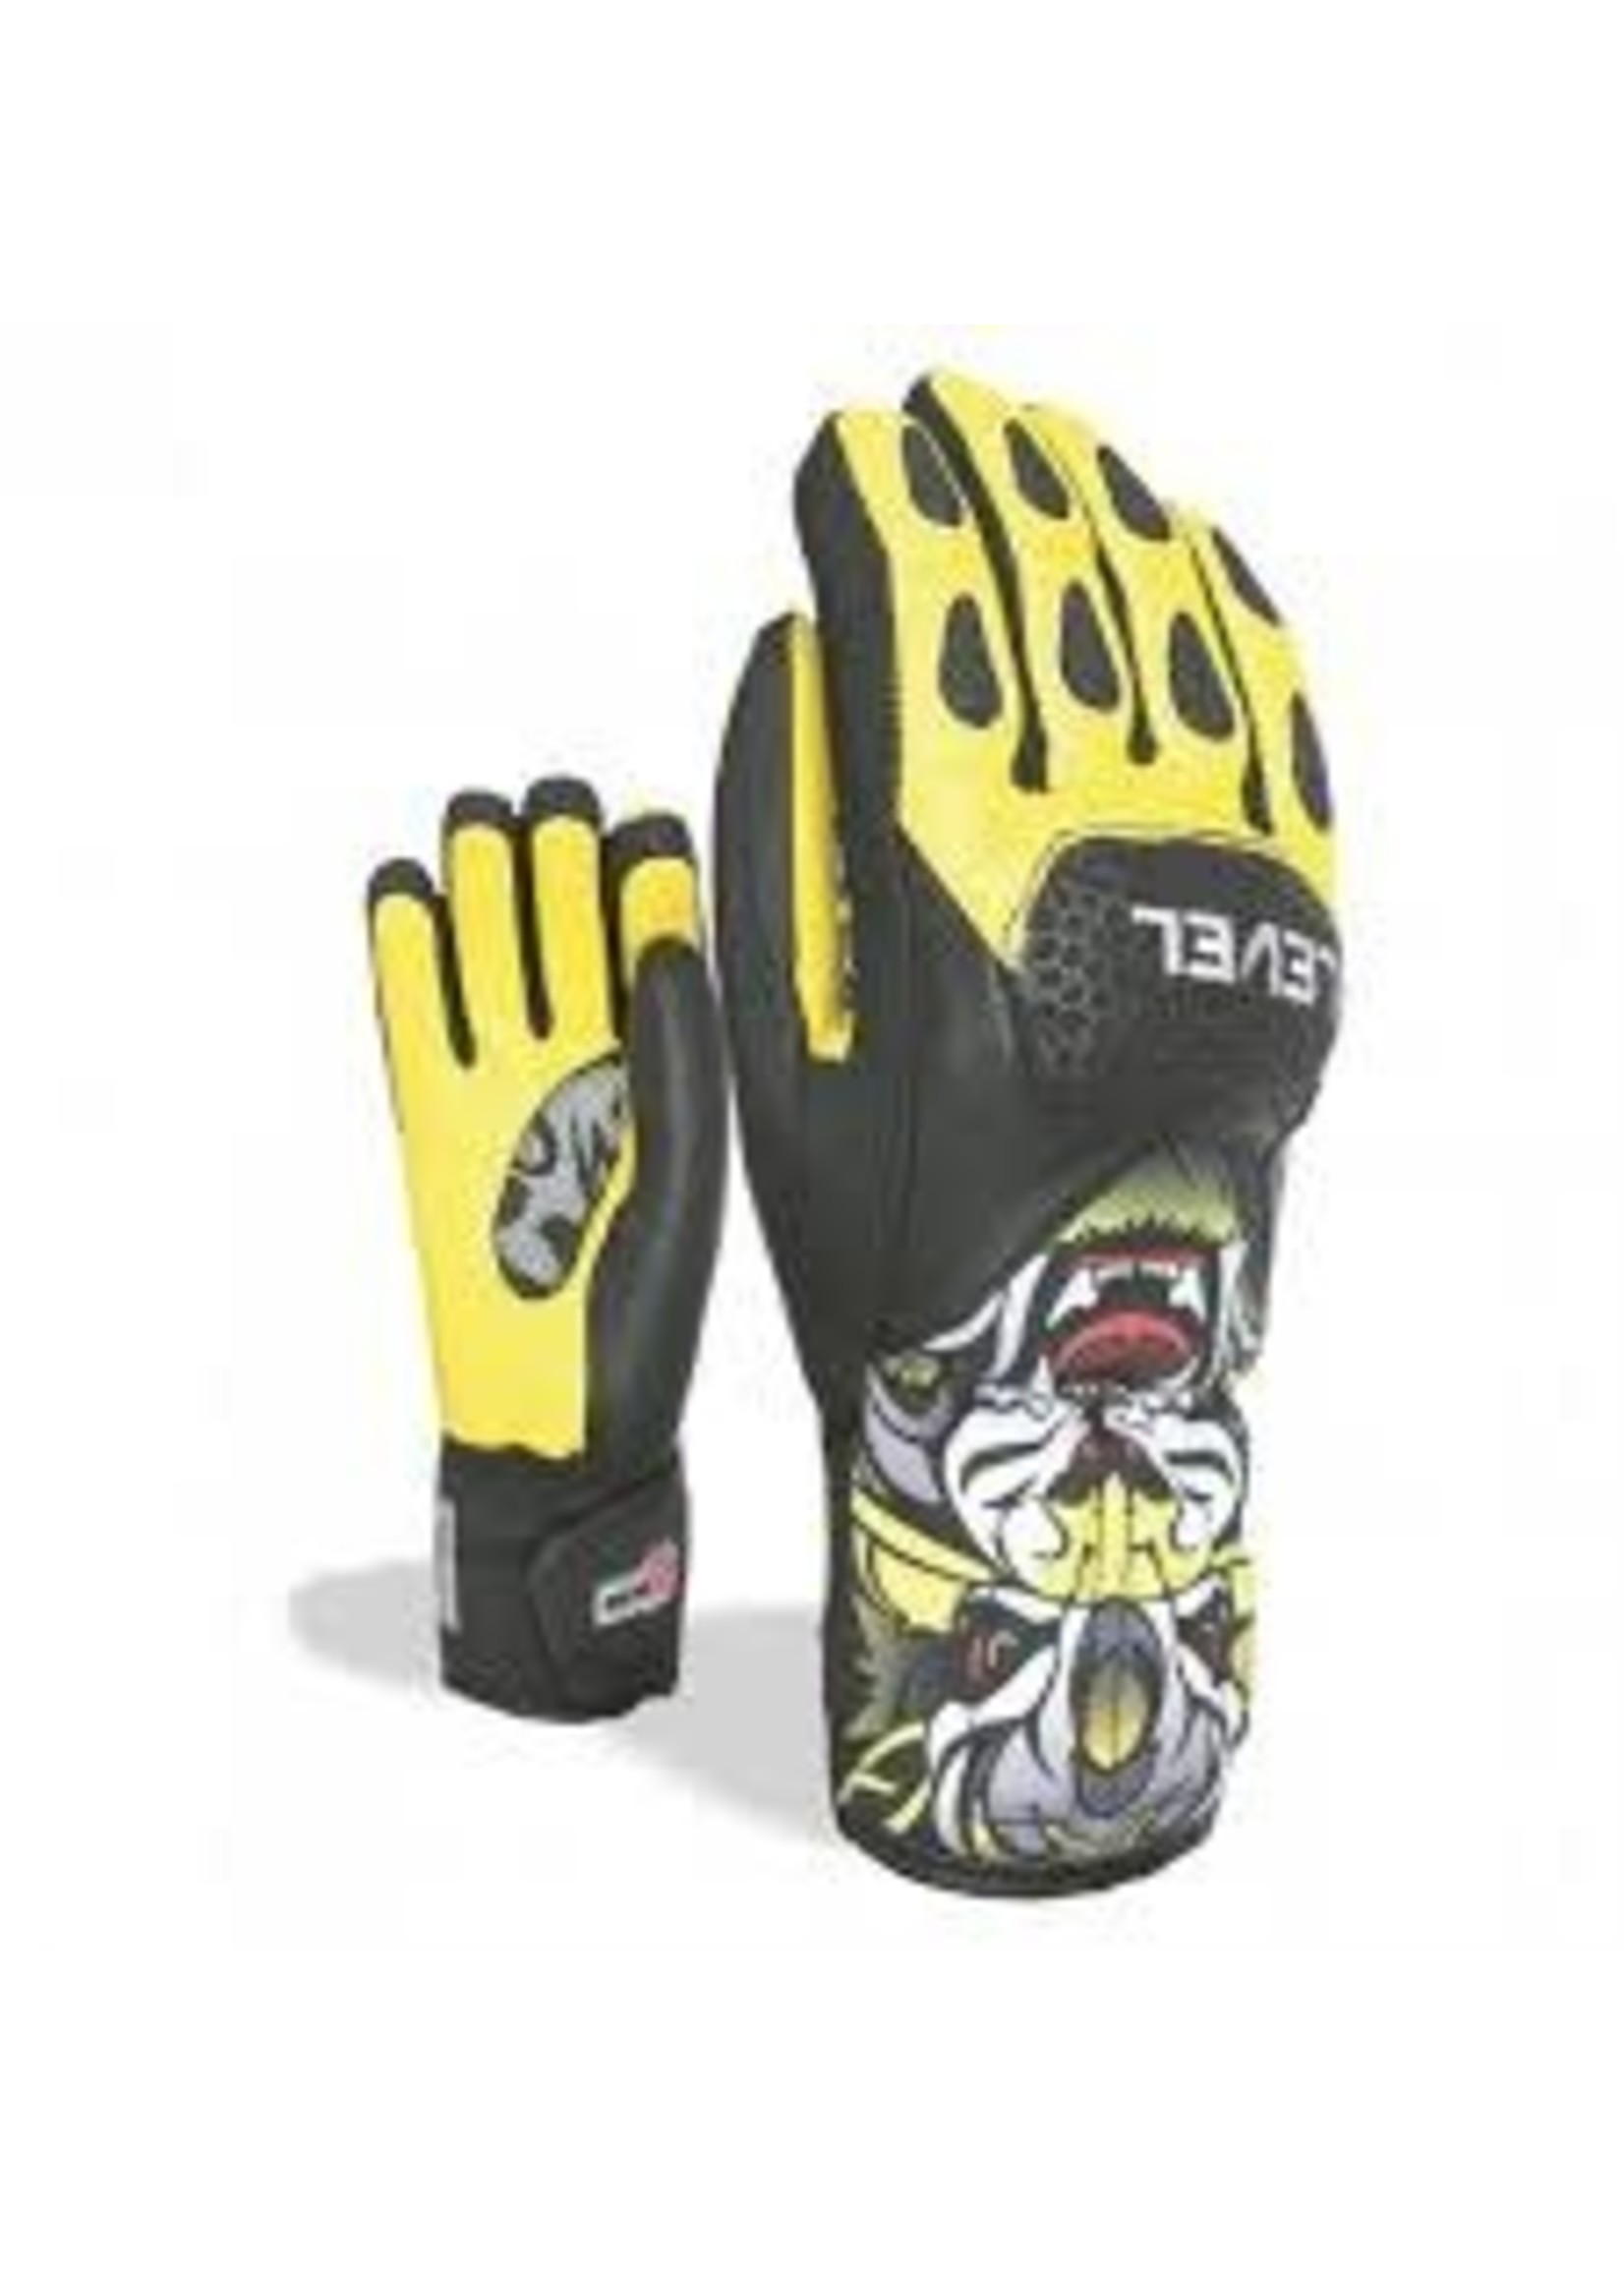 Level Level- Race Glove Jr.